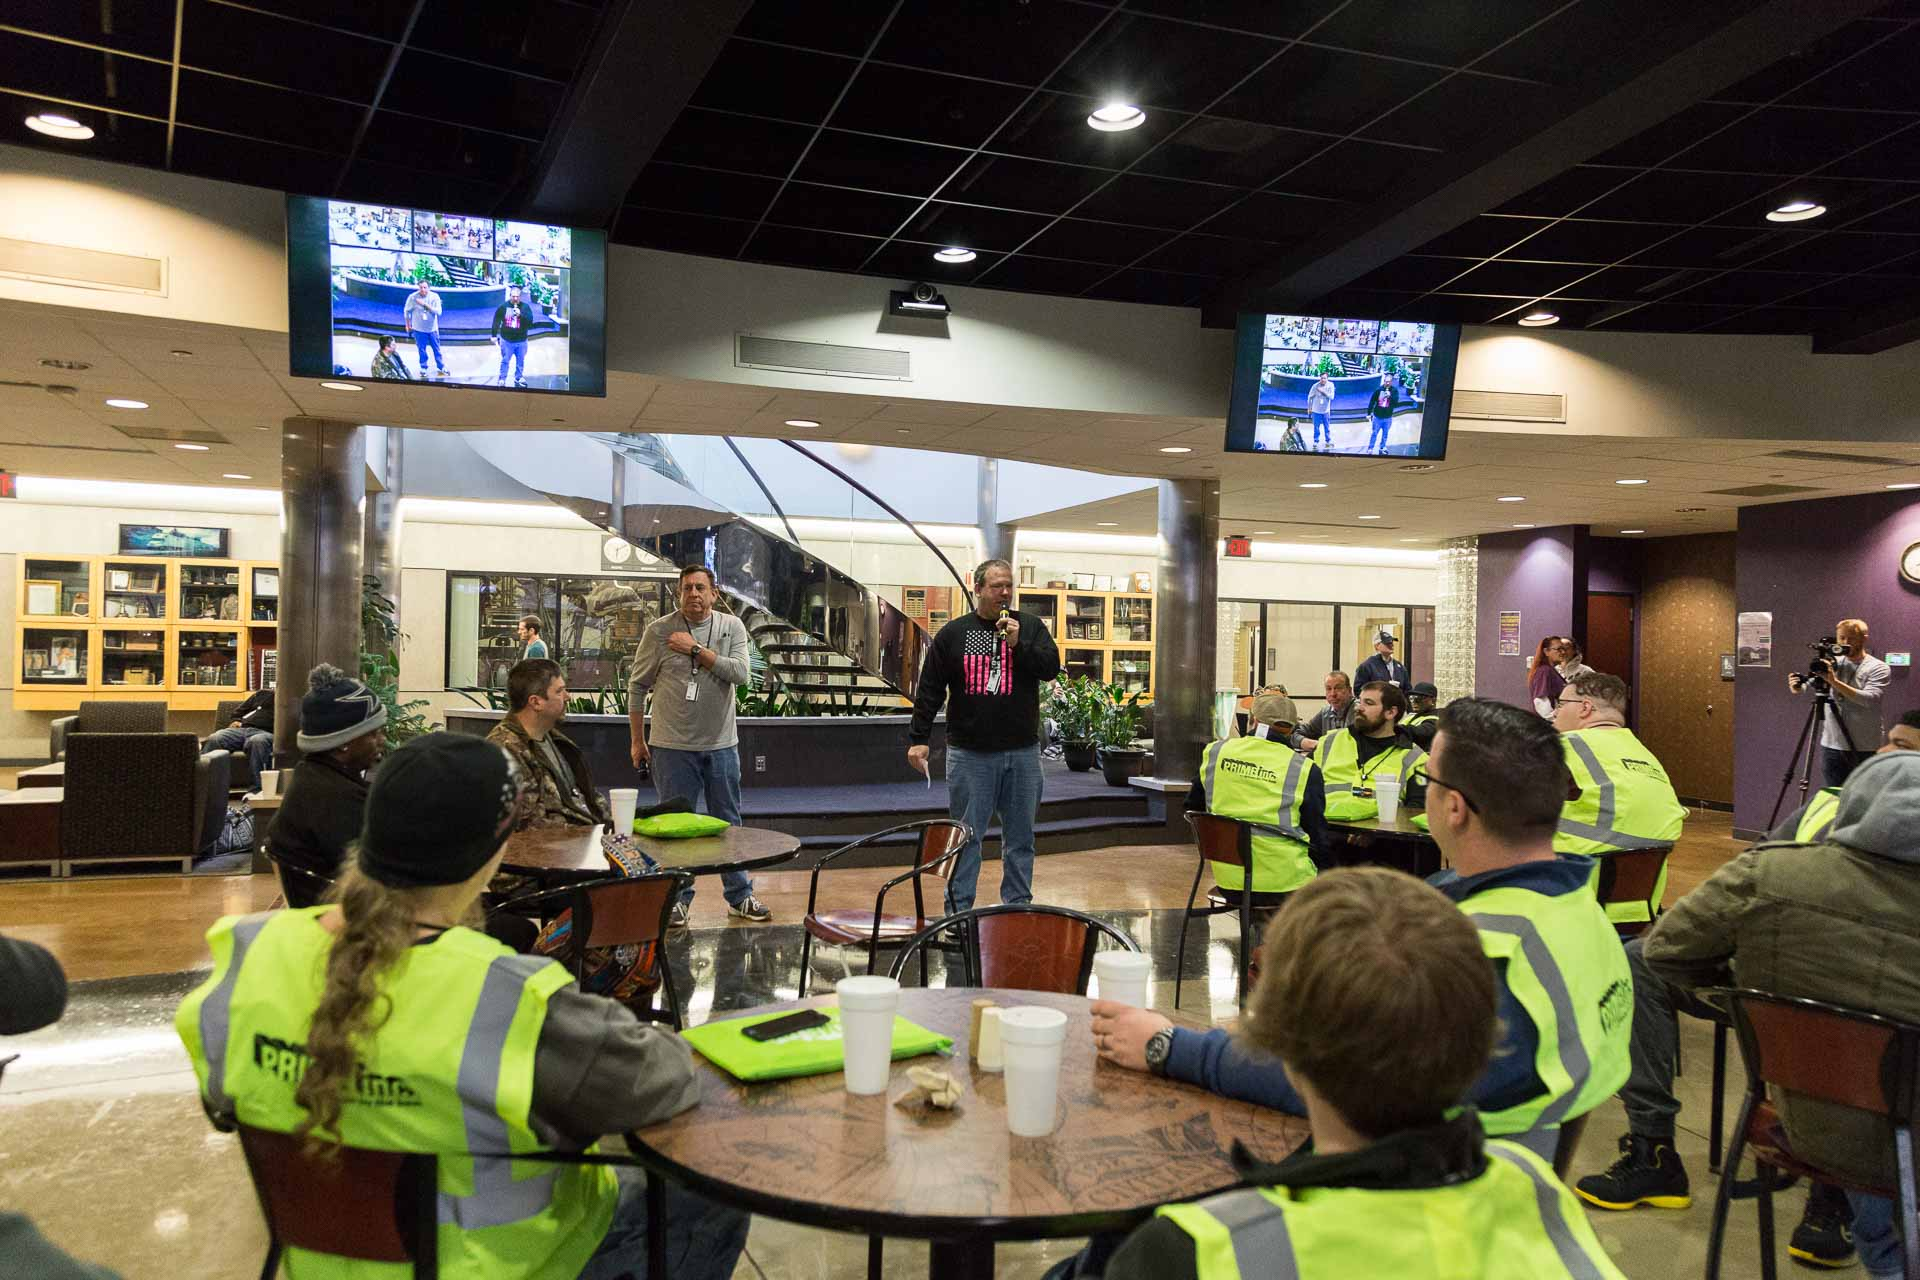 A Prime Inc. associate speaking to his team in a cafeteria area who are all wearing bright green safety vests.